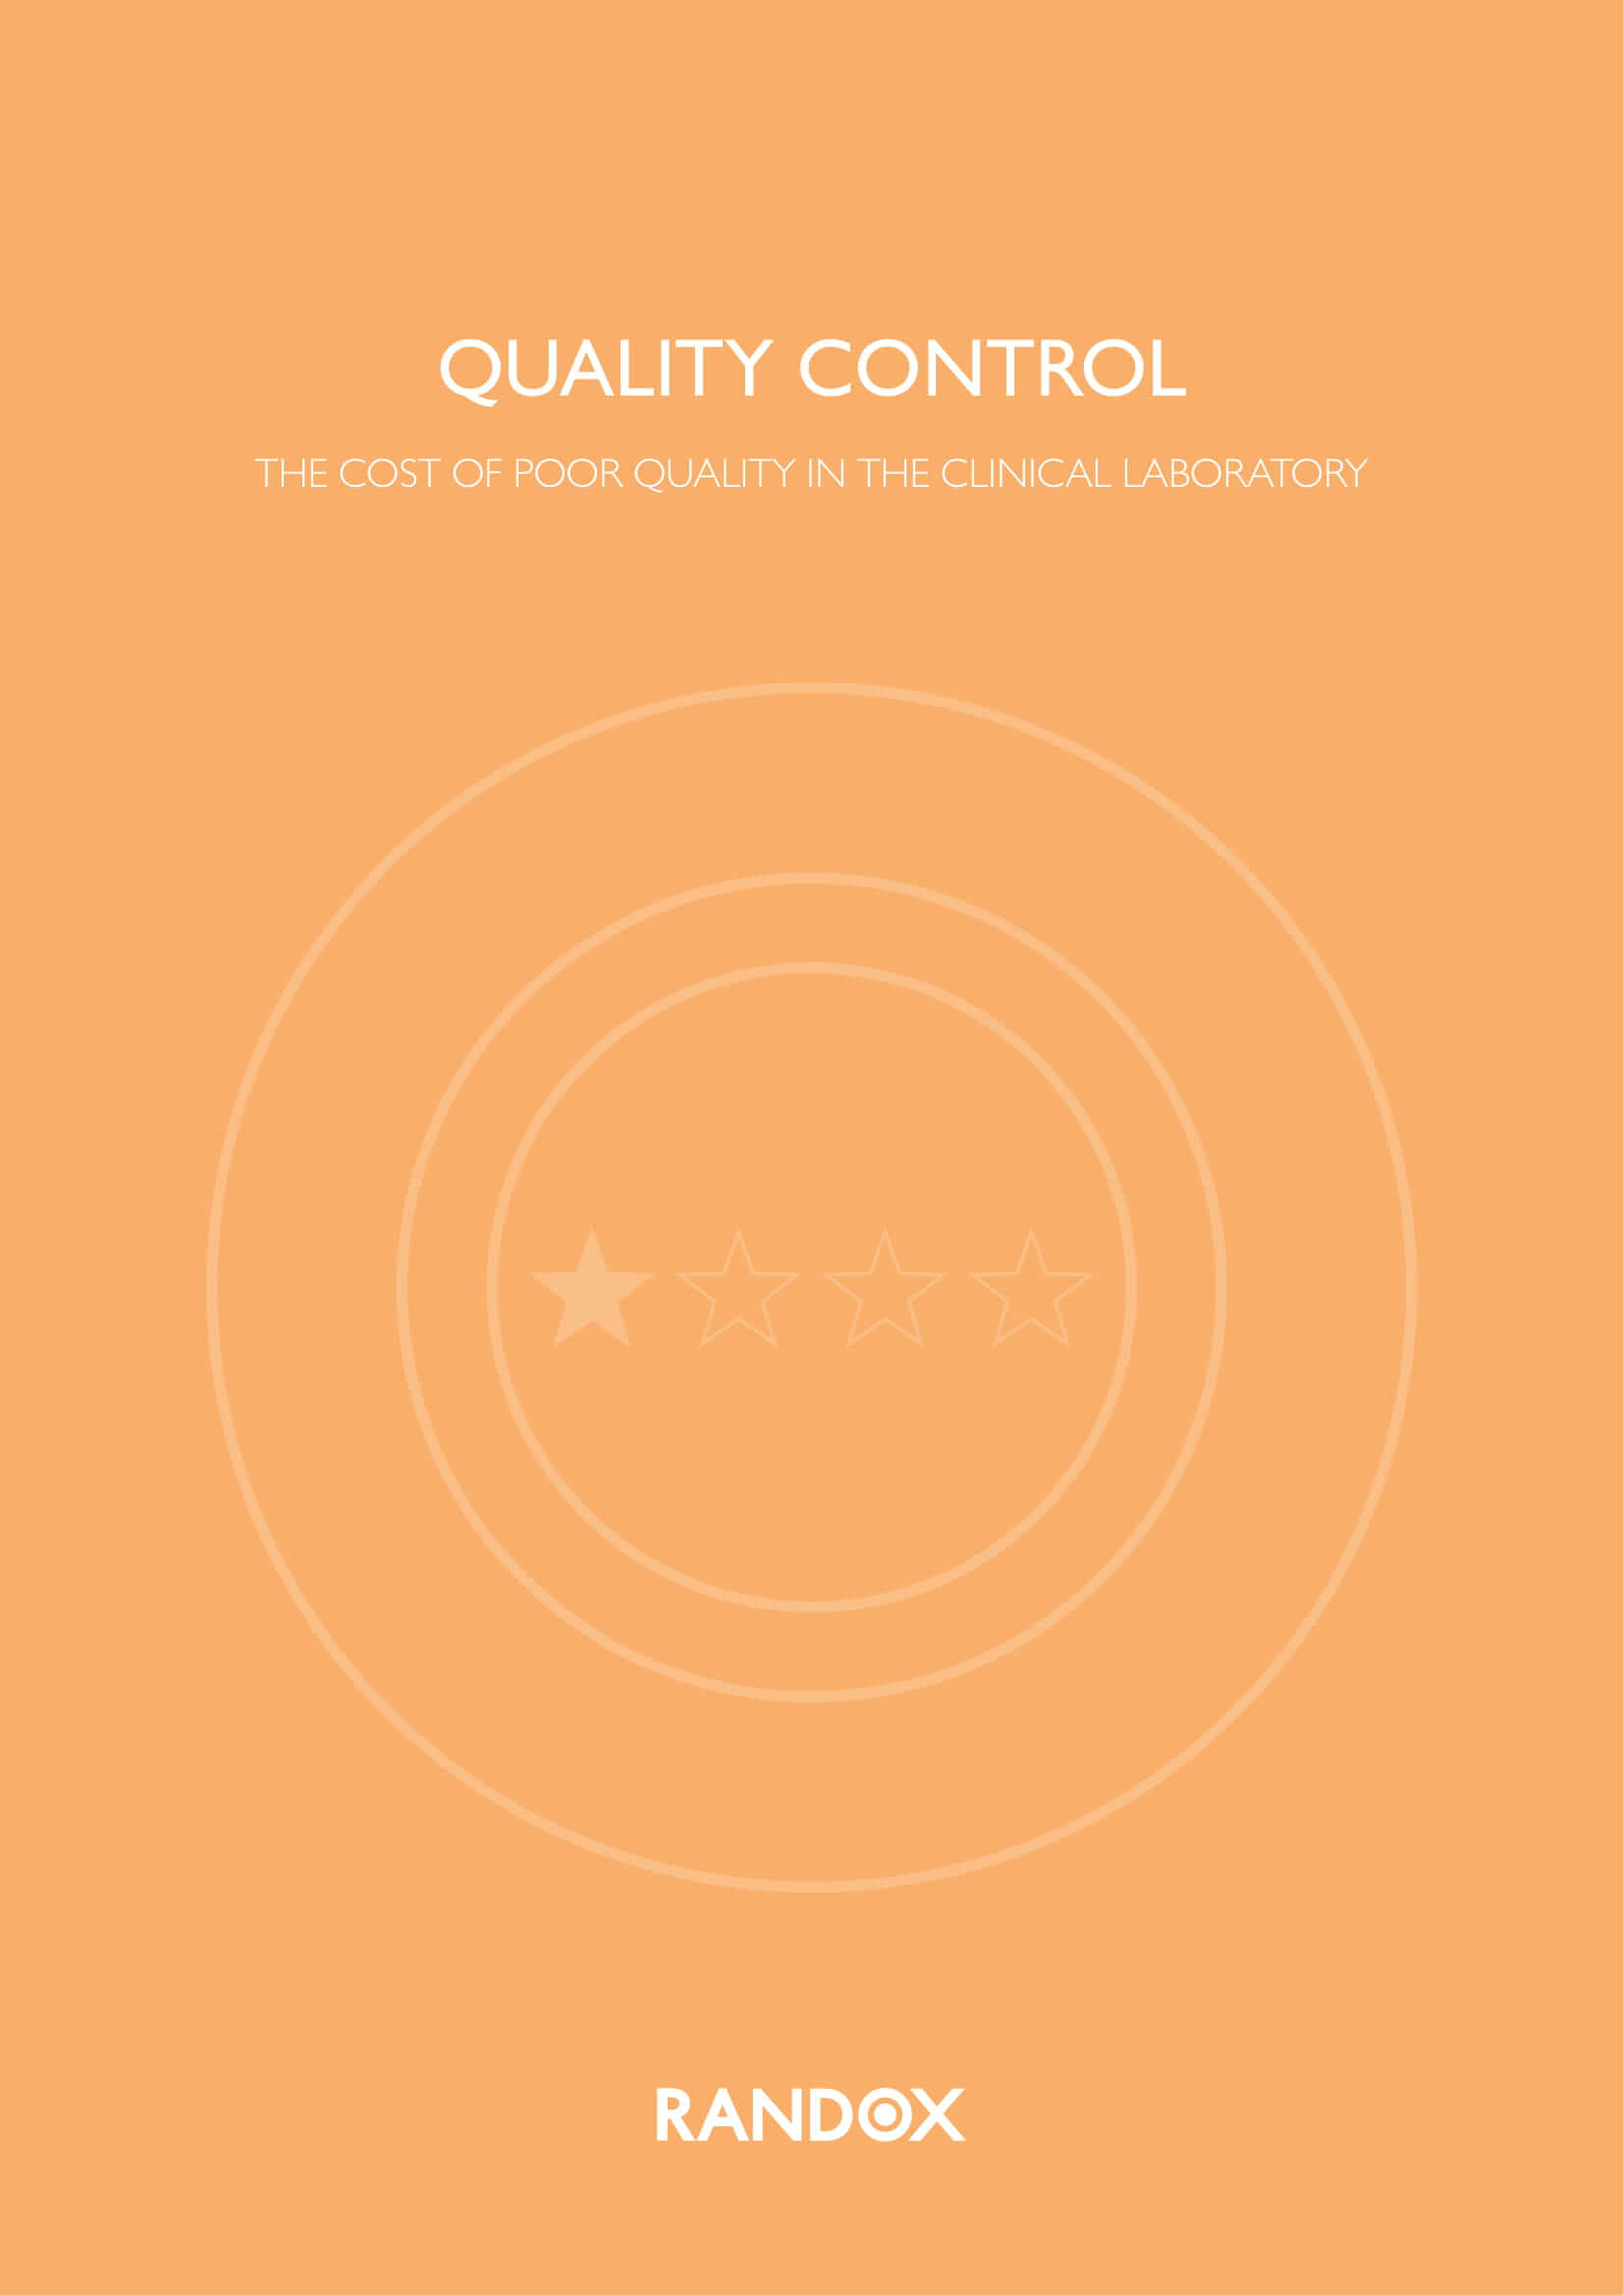 The Cost of Poor Quality in the Clinical Laboratory - Download